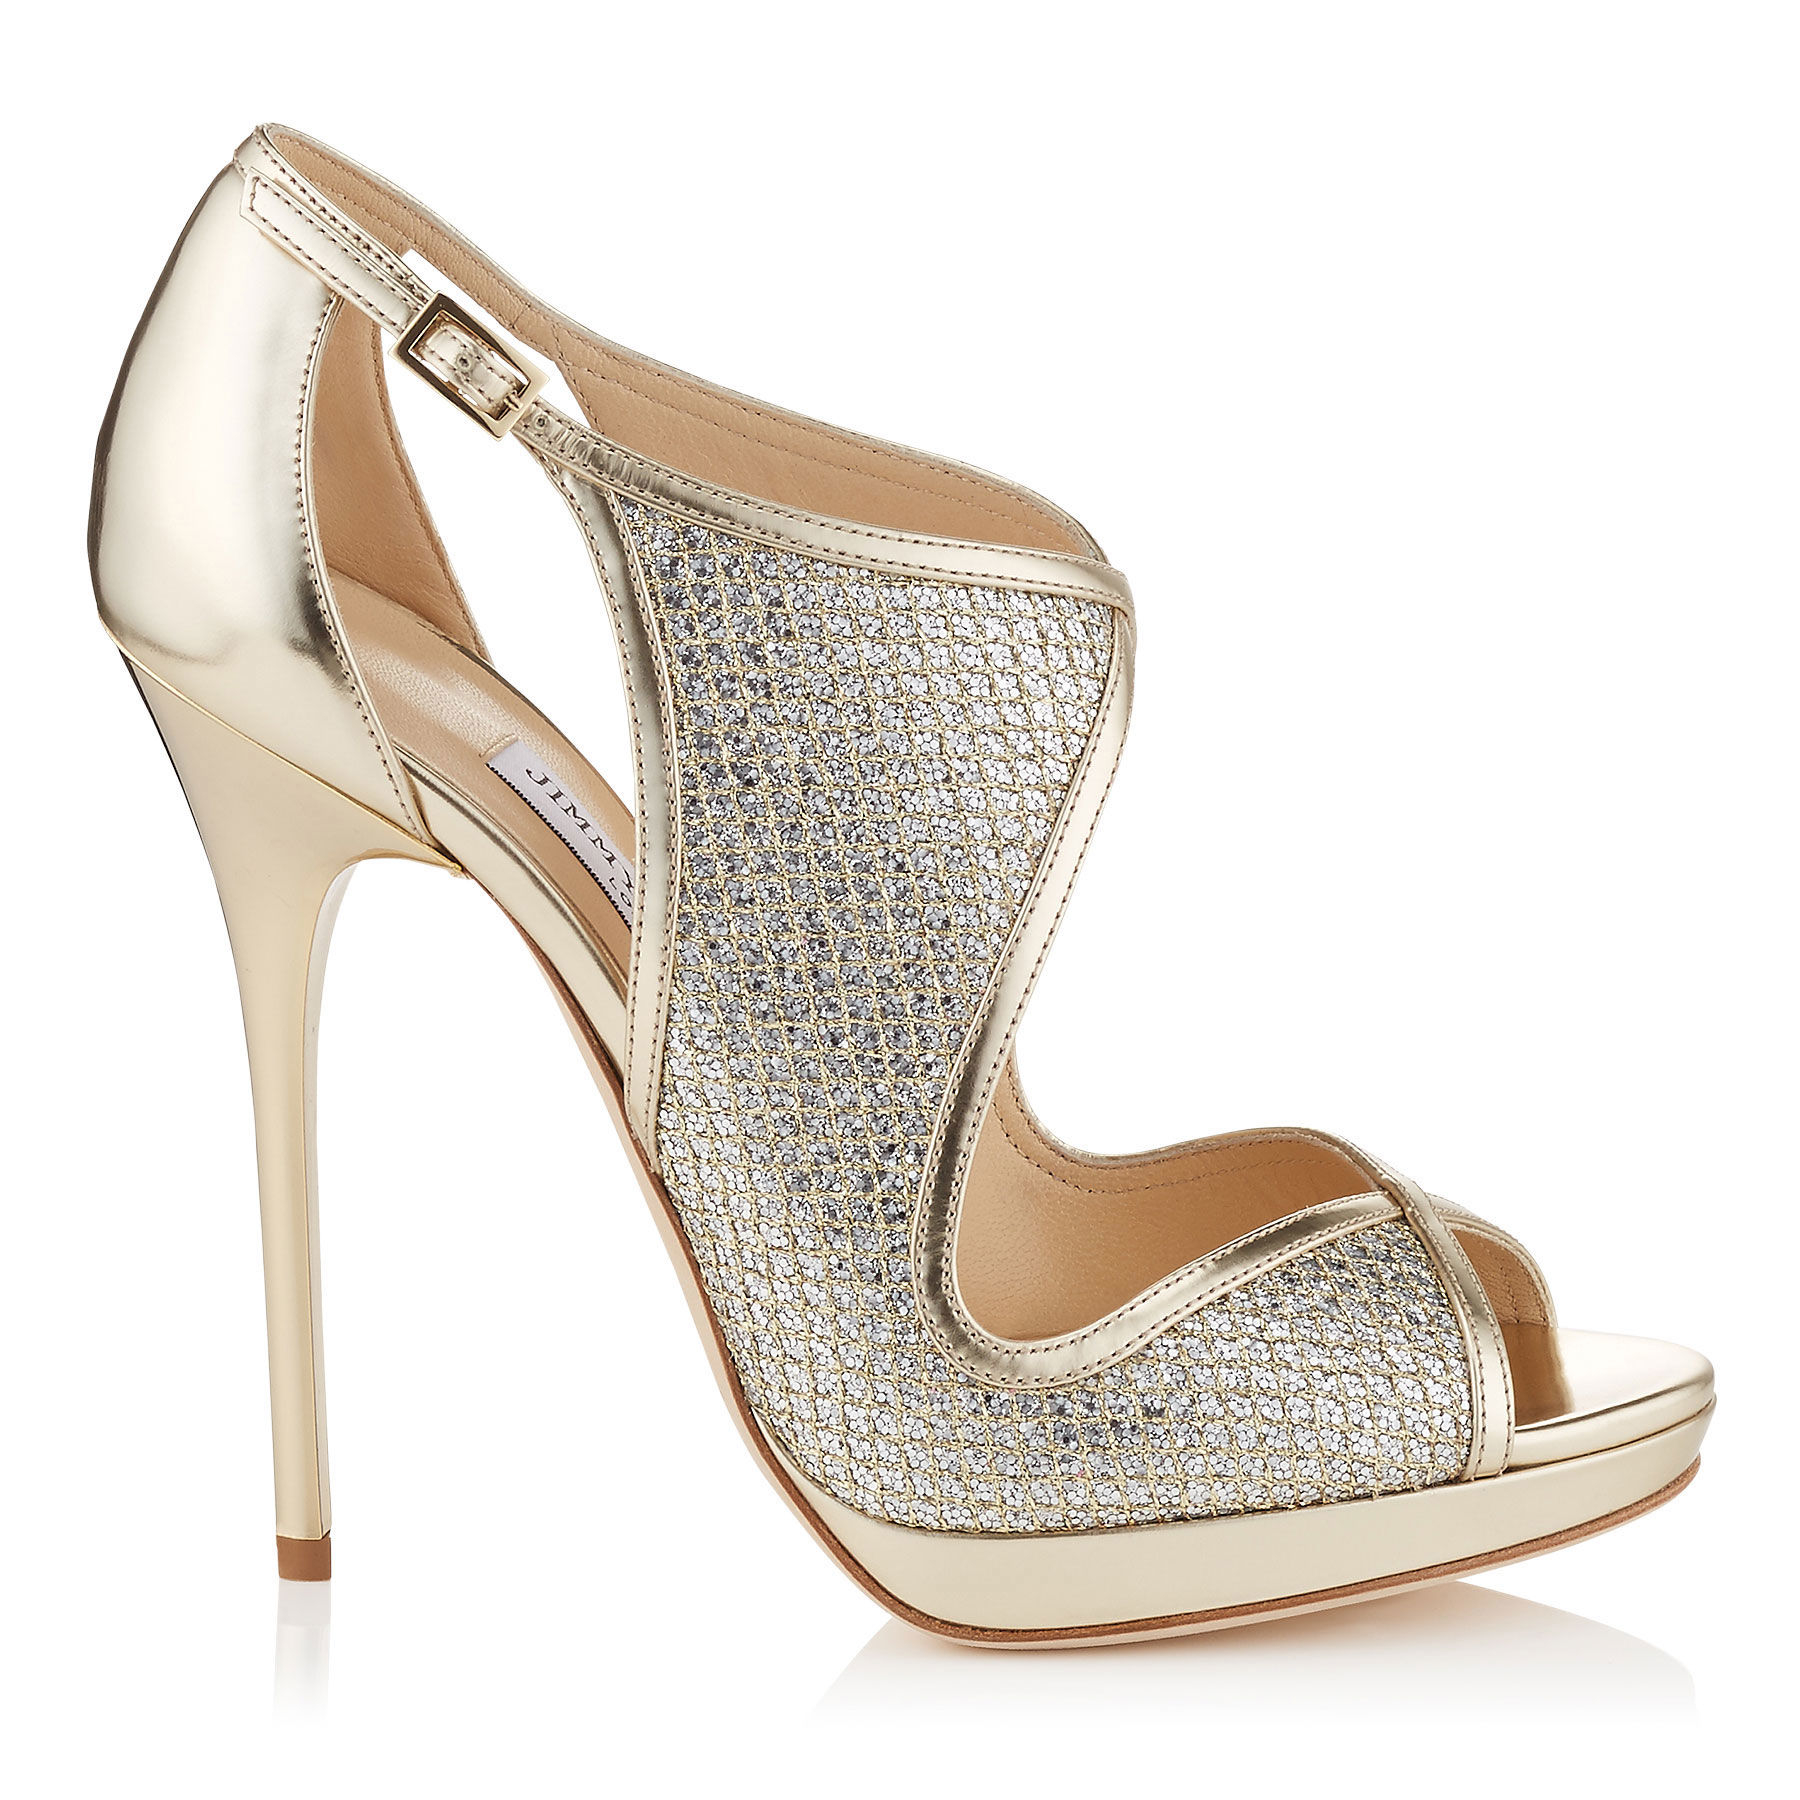 Champagne Patent Leather Shoes